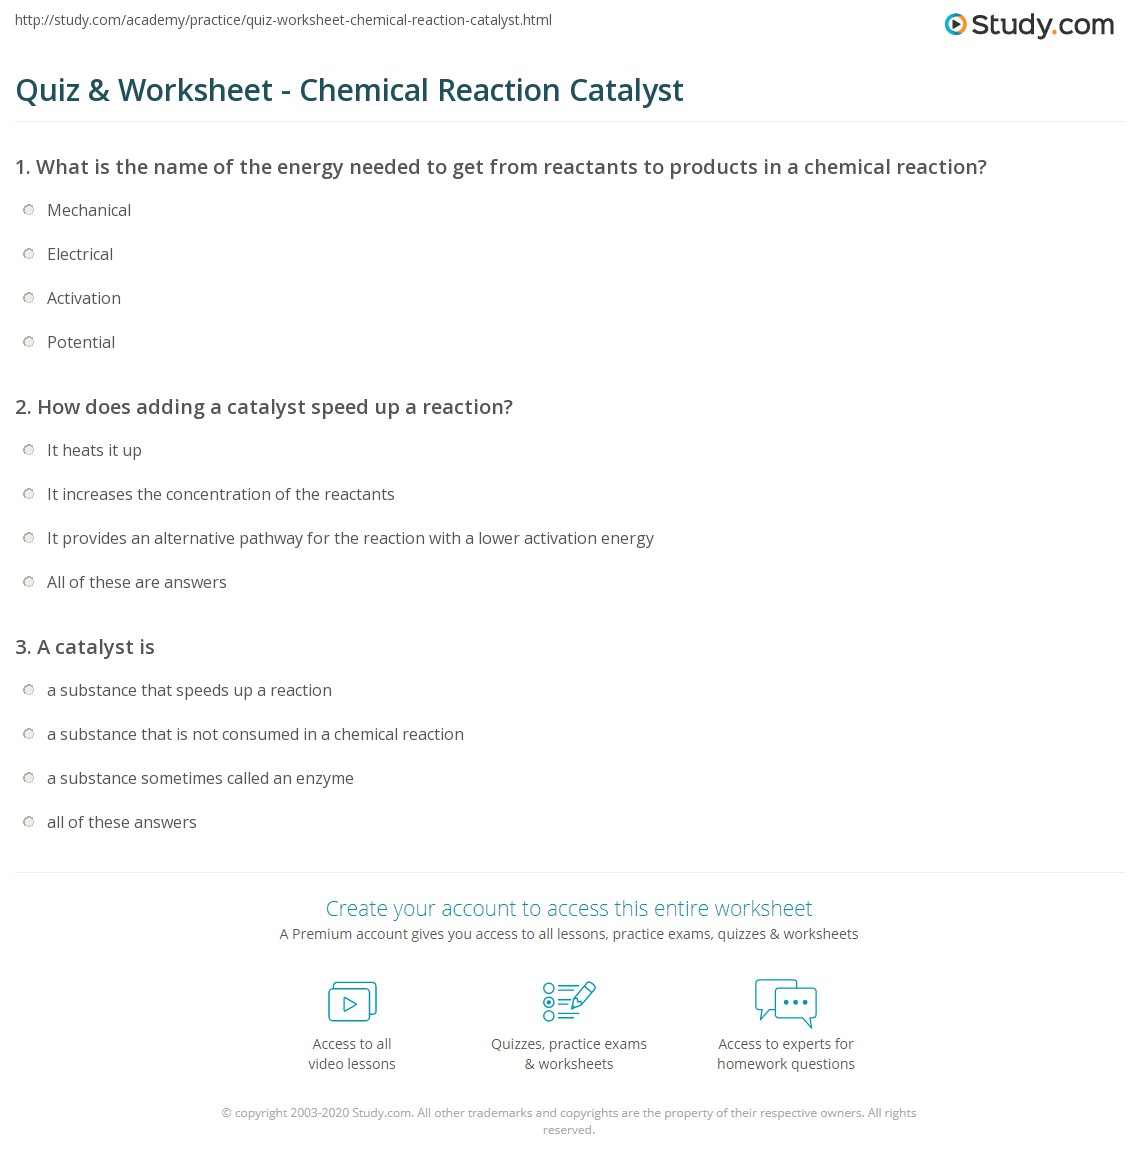 quiz worksheet chemical reaction catalyst. Black Bedroom Furniture Sets. Home Design Ideas